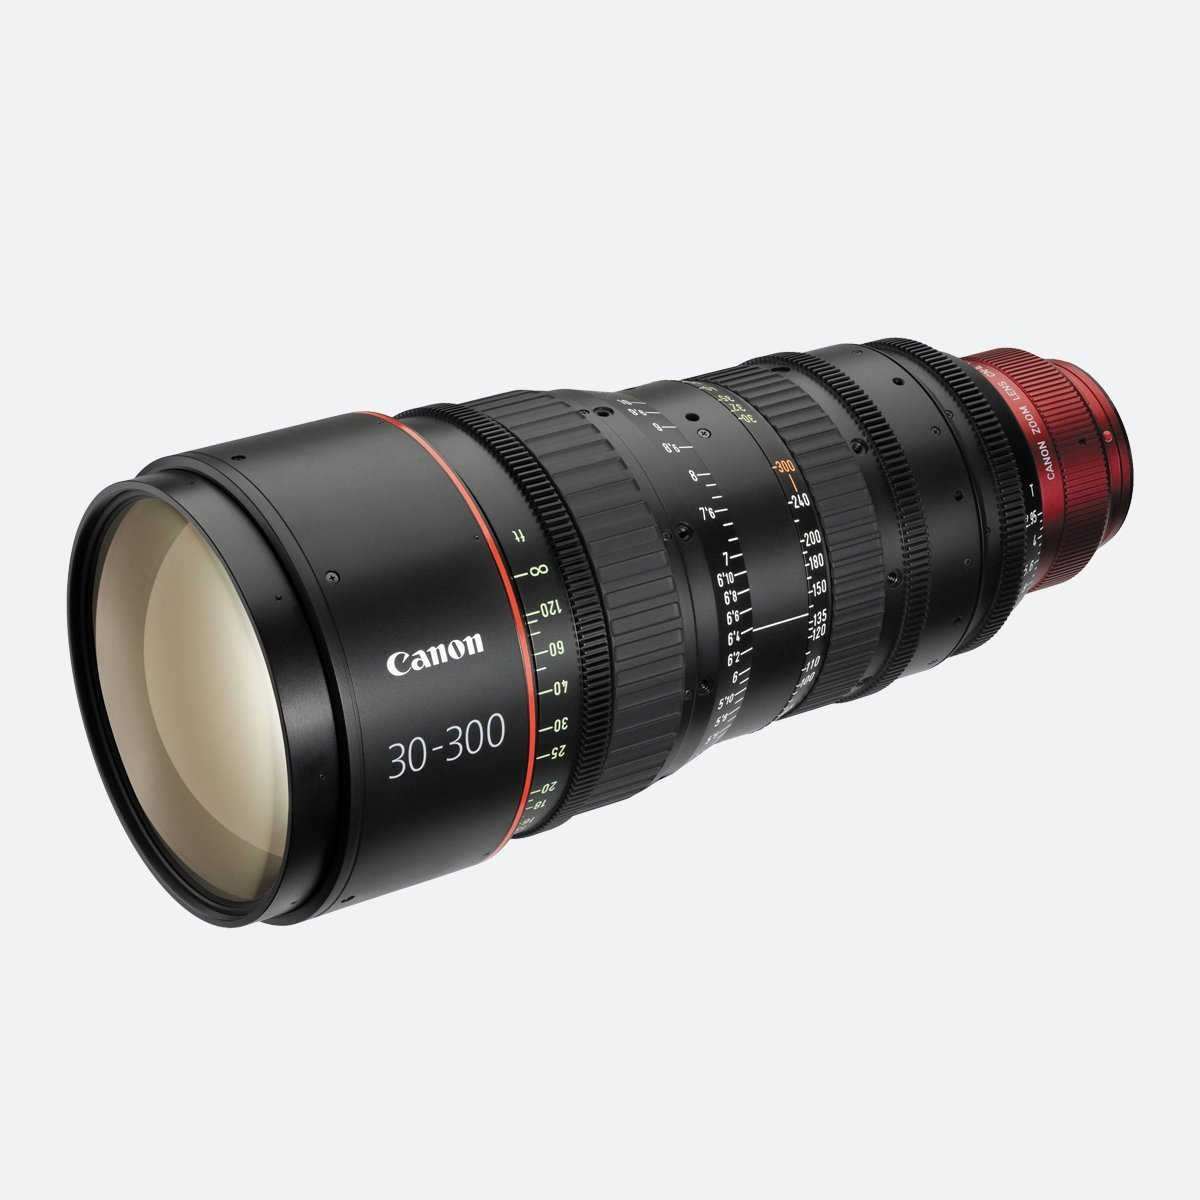 Canon CN-E30-300mm T2.95-3.7 4K Cinema Zoom Lens